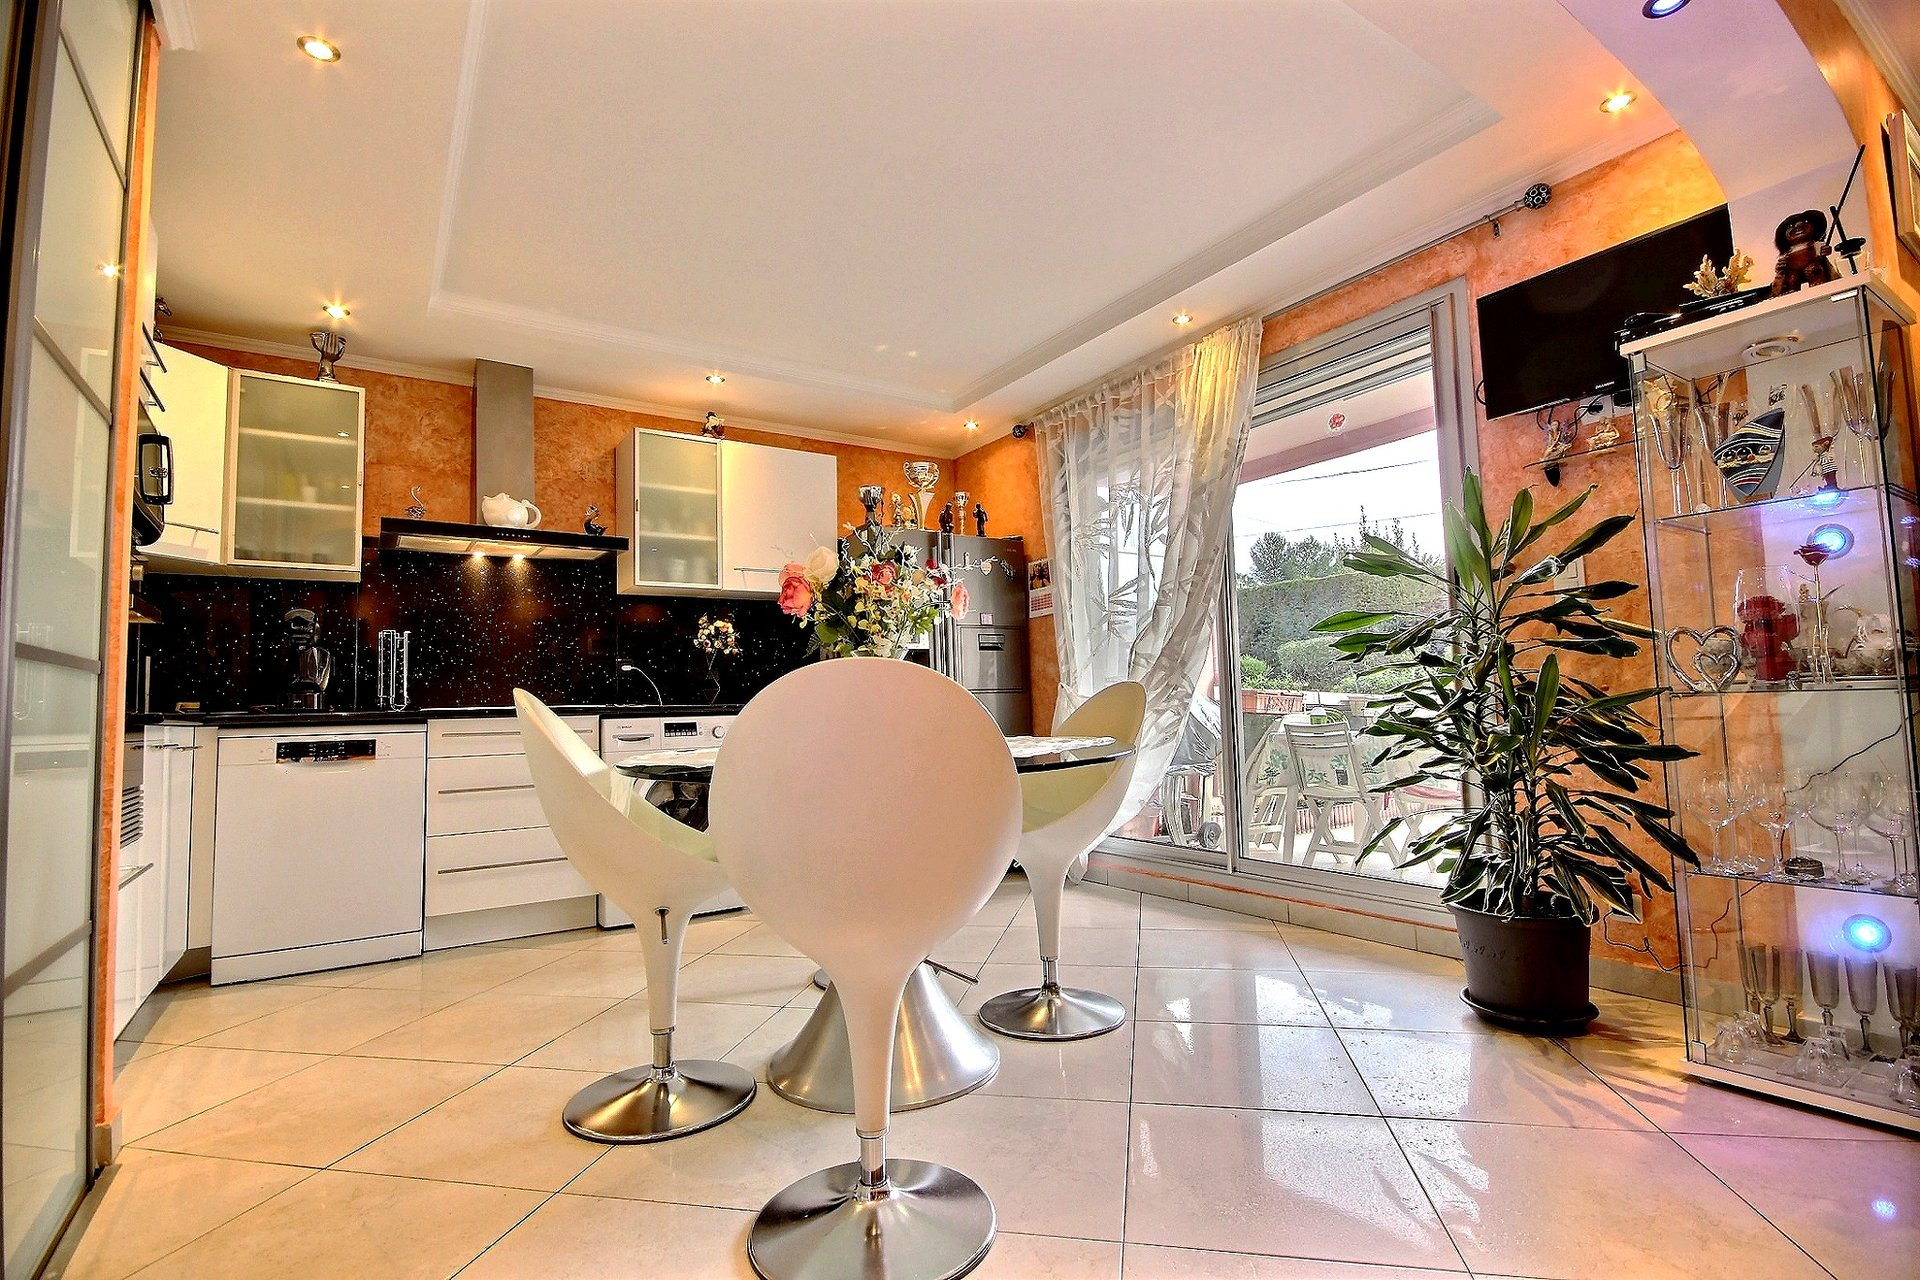 Apartment for sale in Antibes - residence with swimming pool